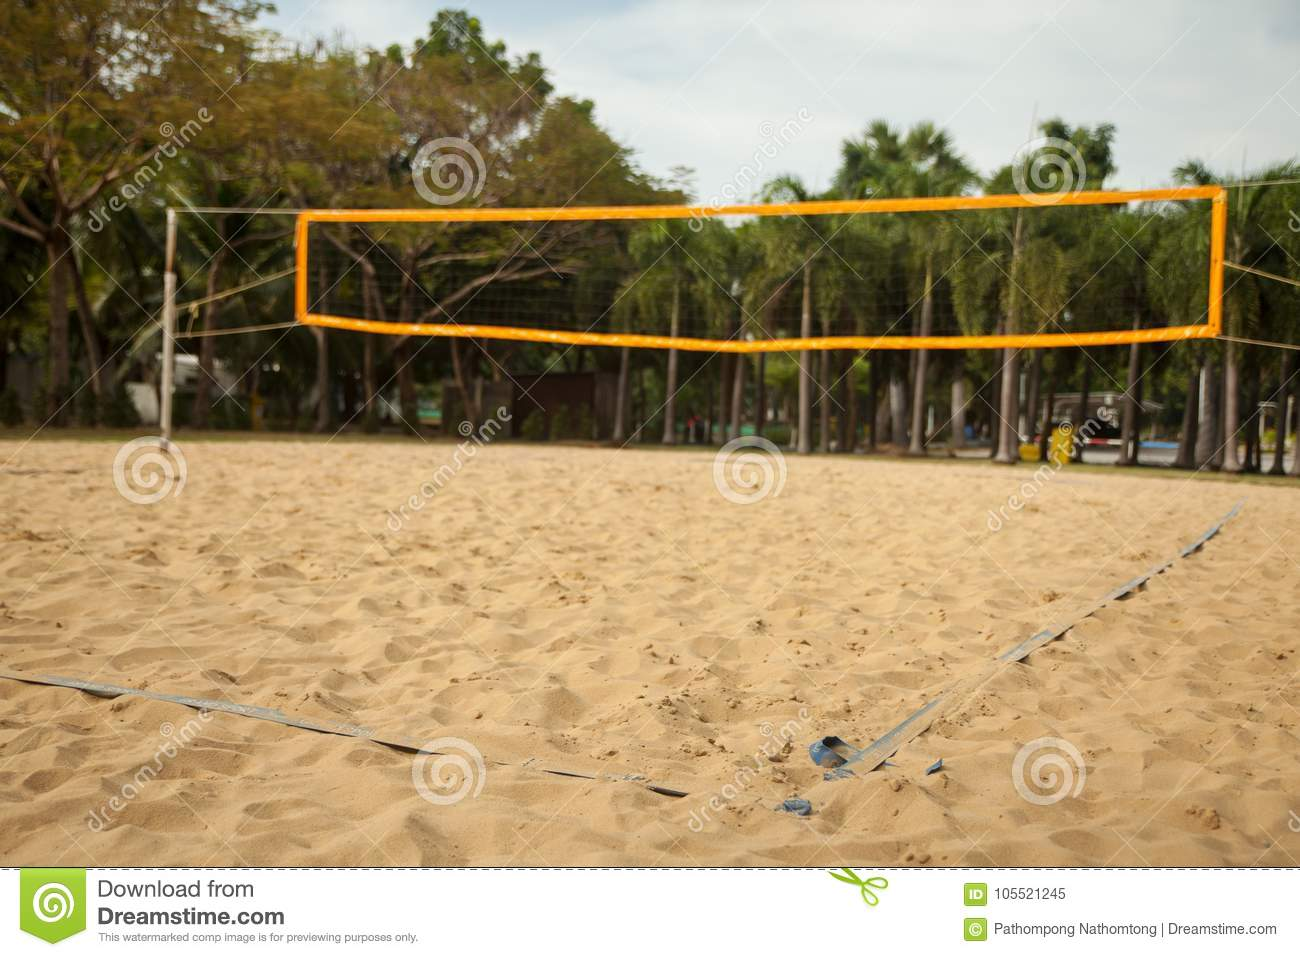 Beach Volleyball Court With Lines Stock Image Image Of Game Coastline 105521245